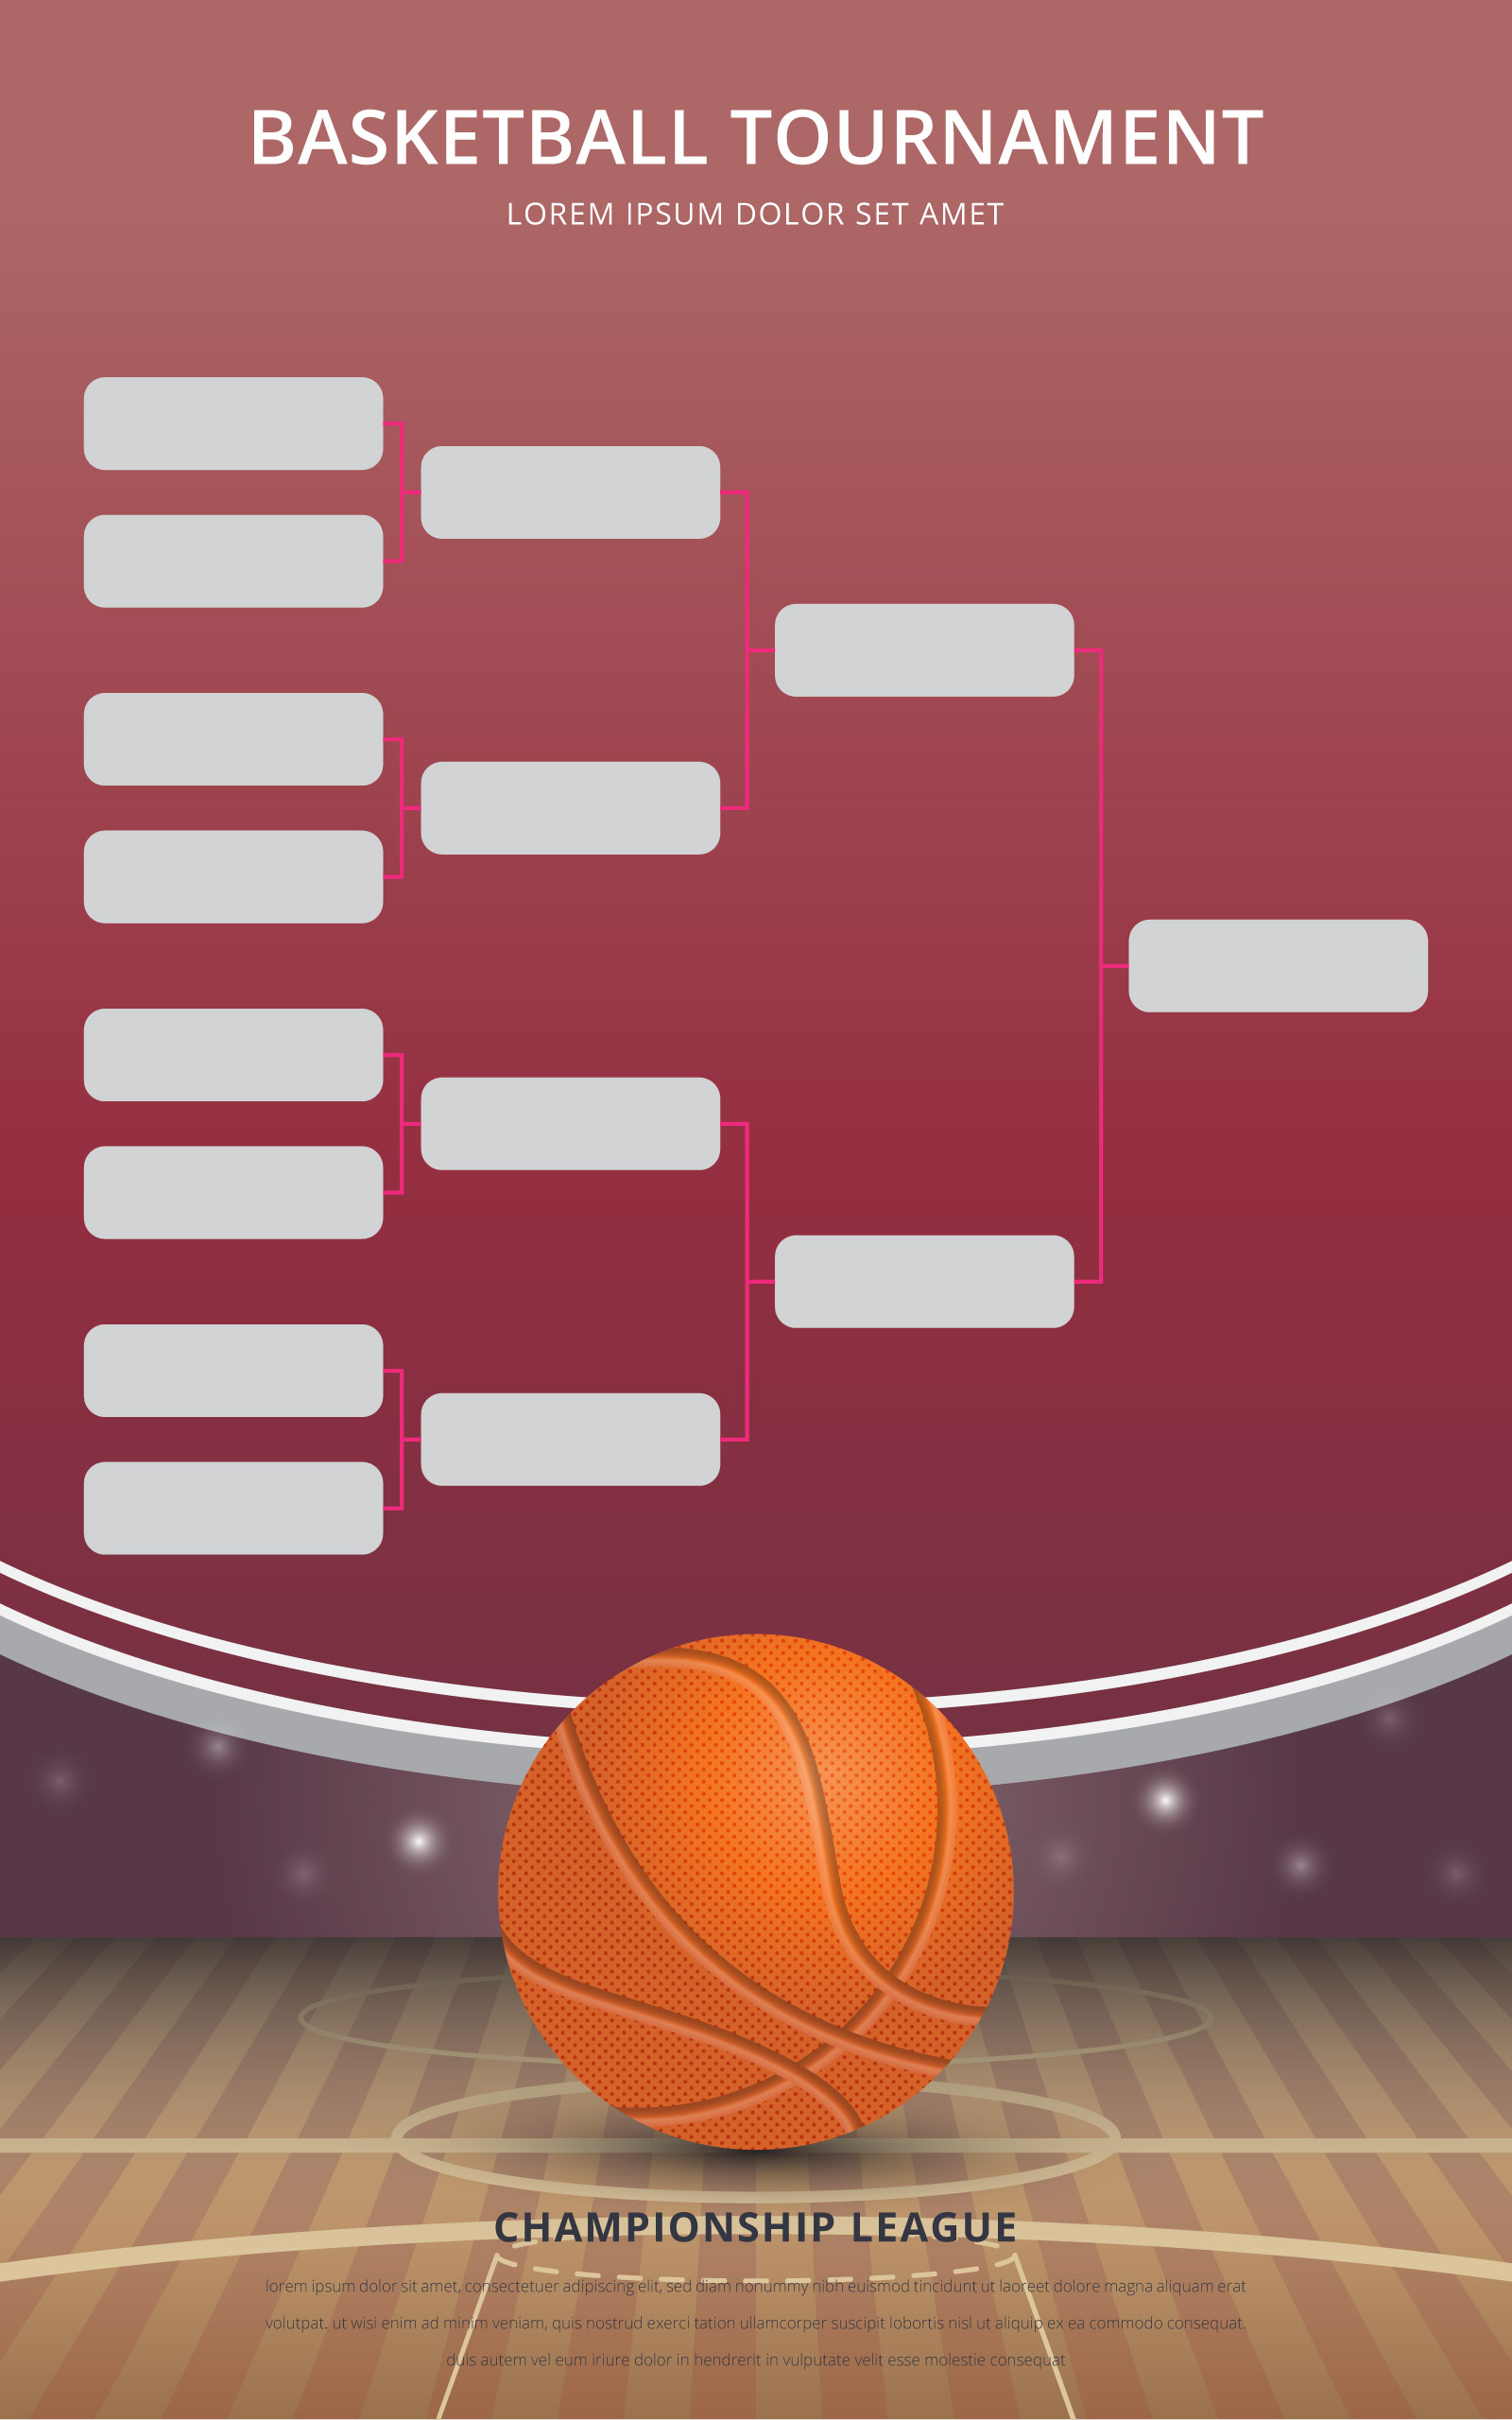 Basketball Tournament Bracket Poster Template Download Free Vector Art Stock Graphics Images